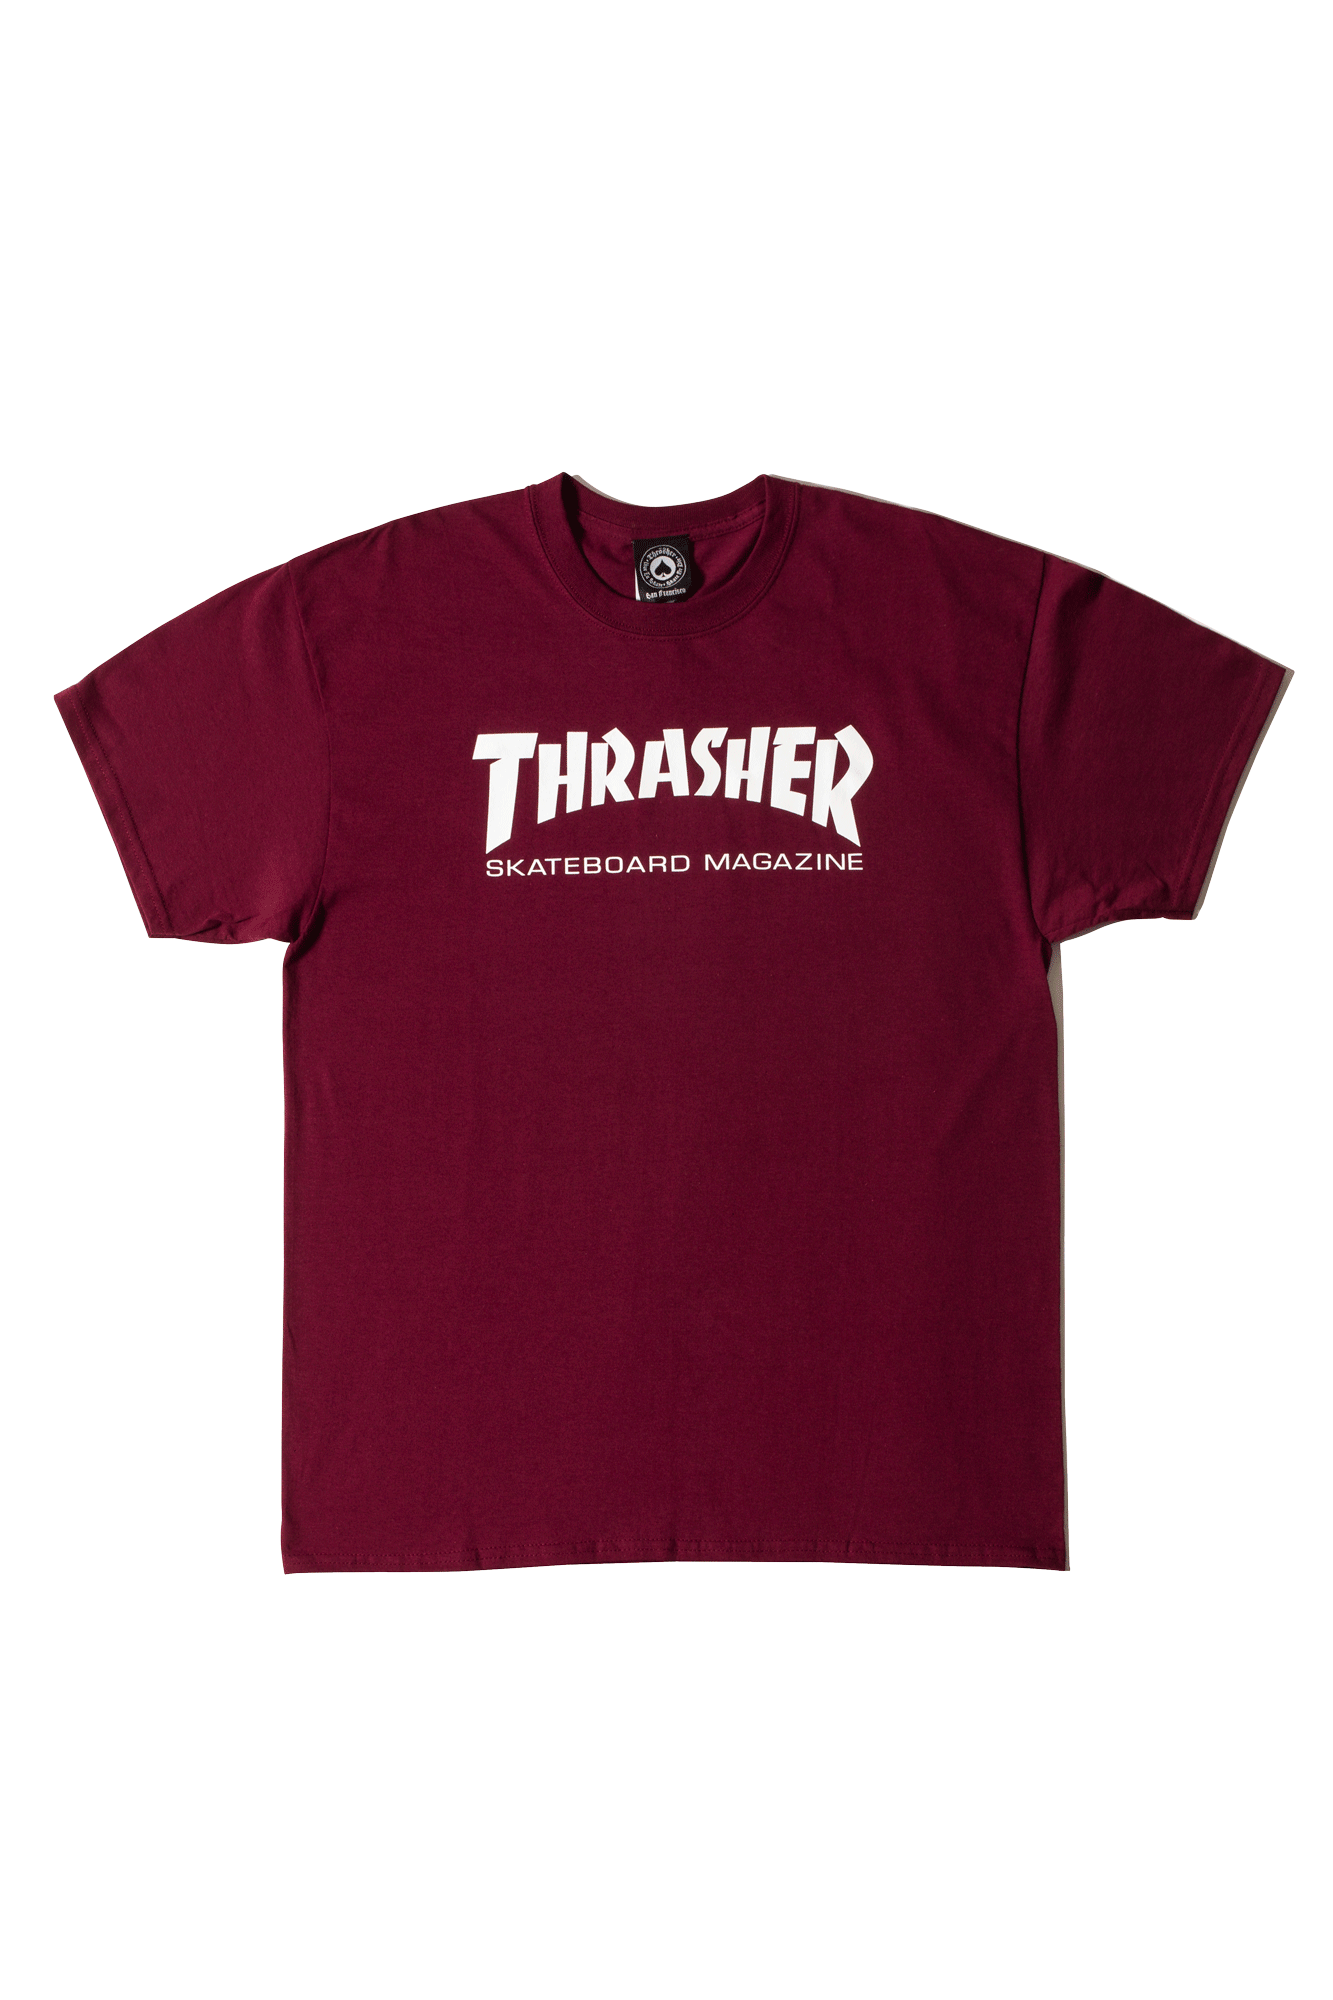 Thrasher T-Shirts Skate Mag Purple 311027#000#PURPLE#S - One Block Down